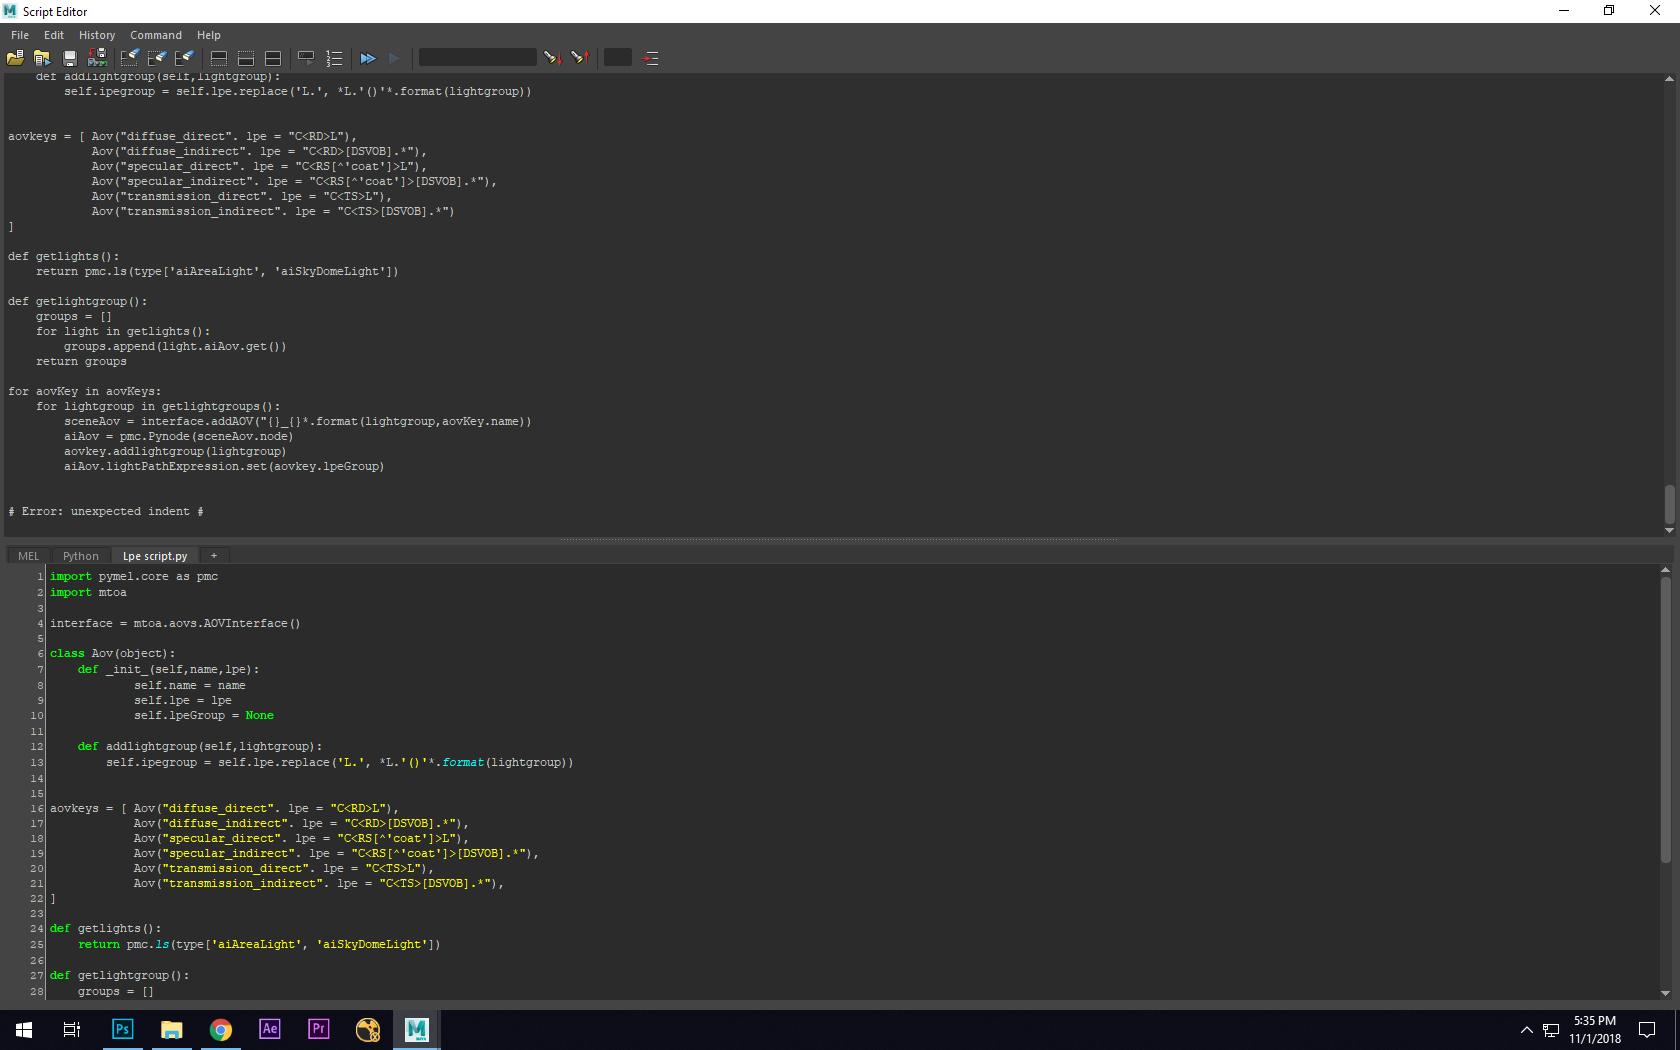 Solved: Getting unexpected indent error when executing python script